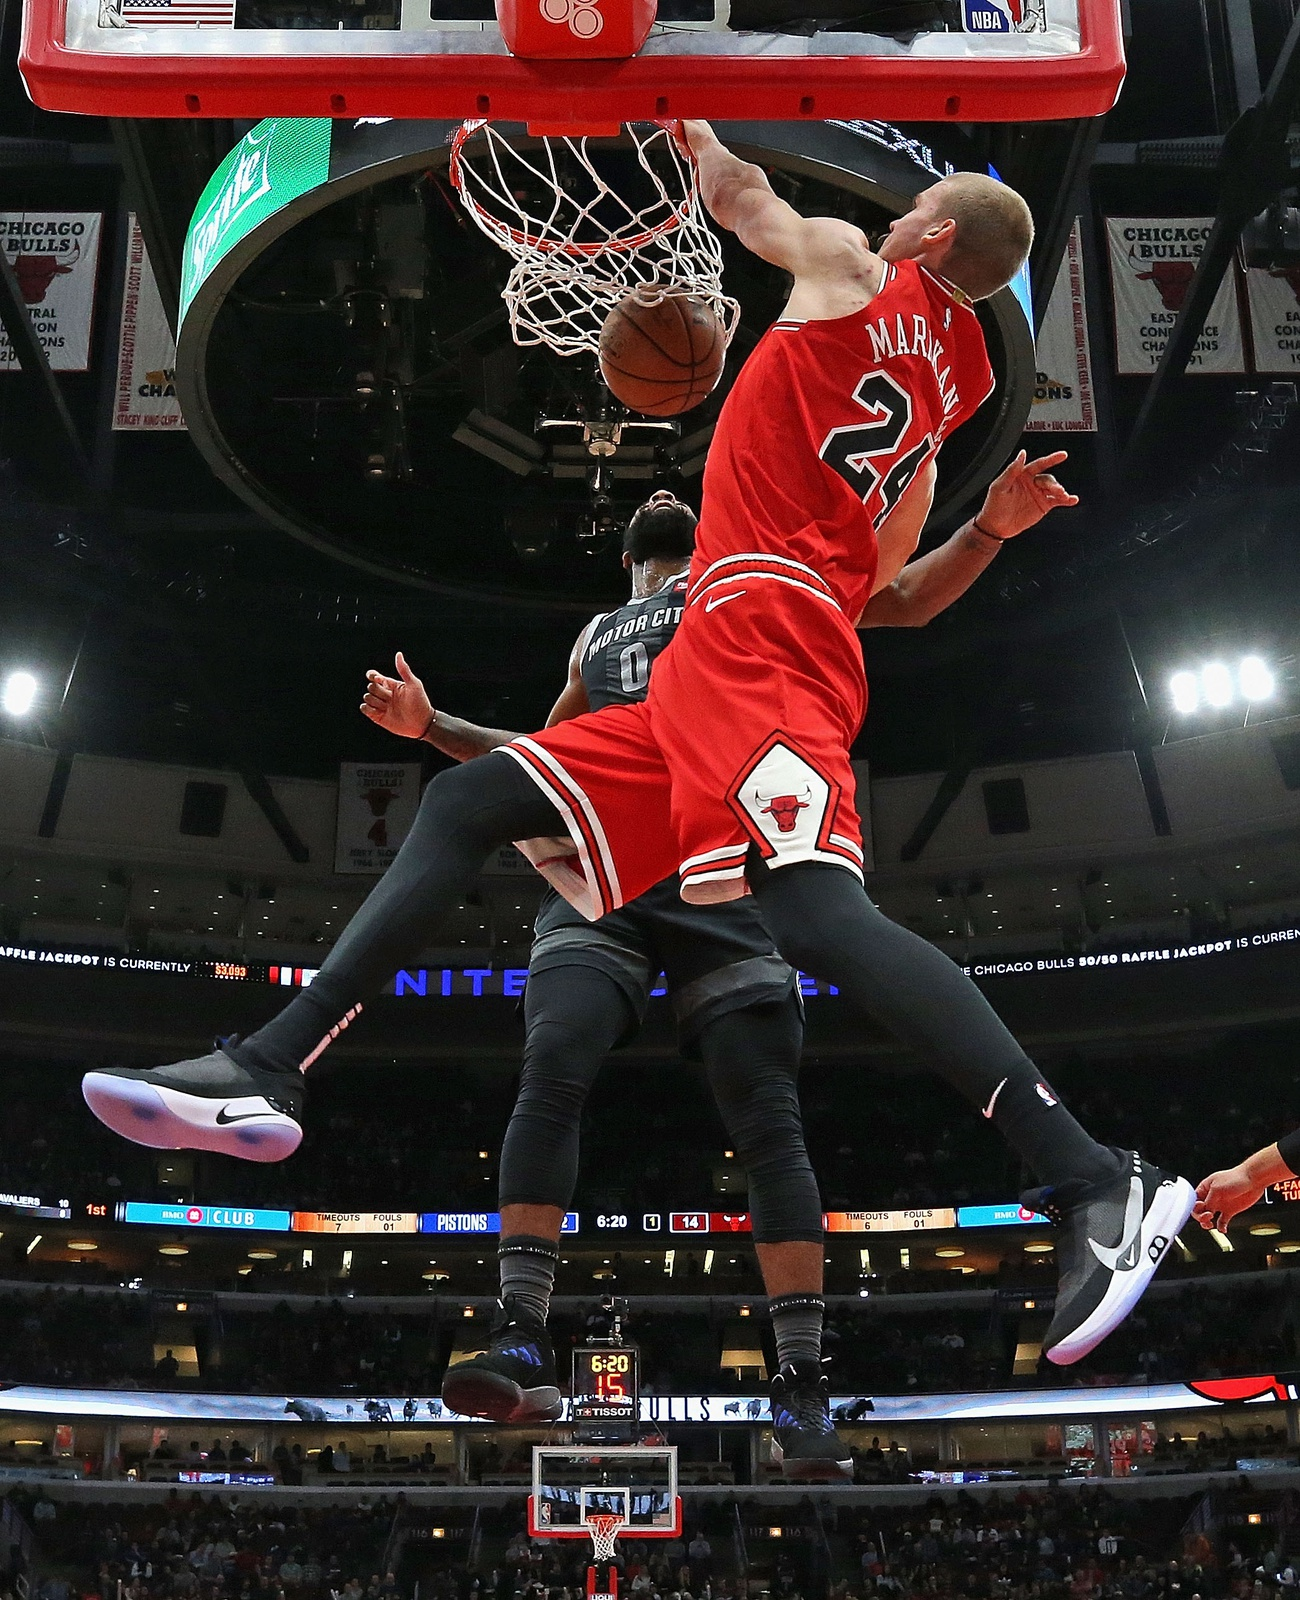 Lauri Markkanen #24 of the Chicago Bulls dunks over Andre Drummond #0 of the Detroit Pistons at the United Center on March 08, 2019 in Chicago, Illinois. The Pistons defeated the Bulls 112-104.